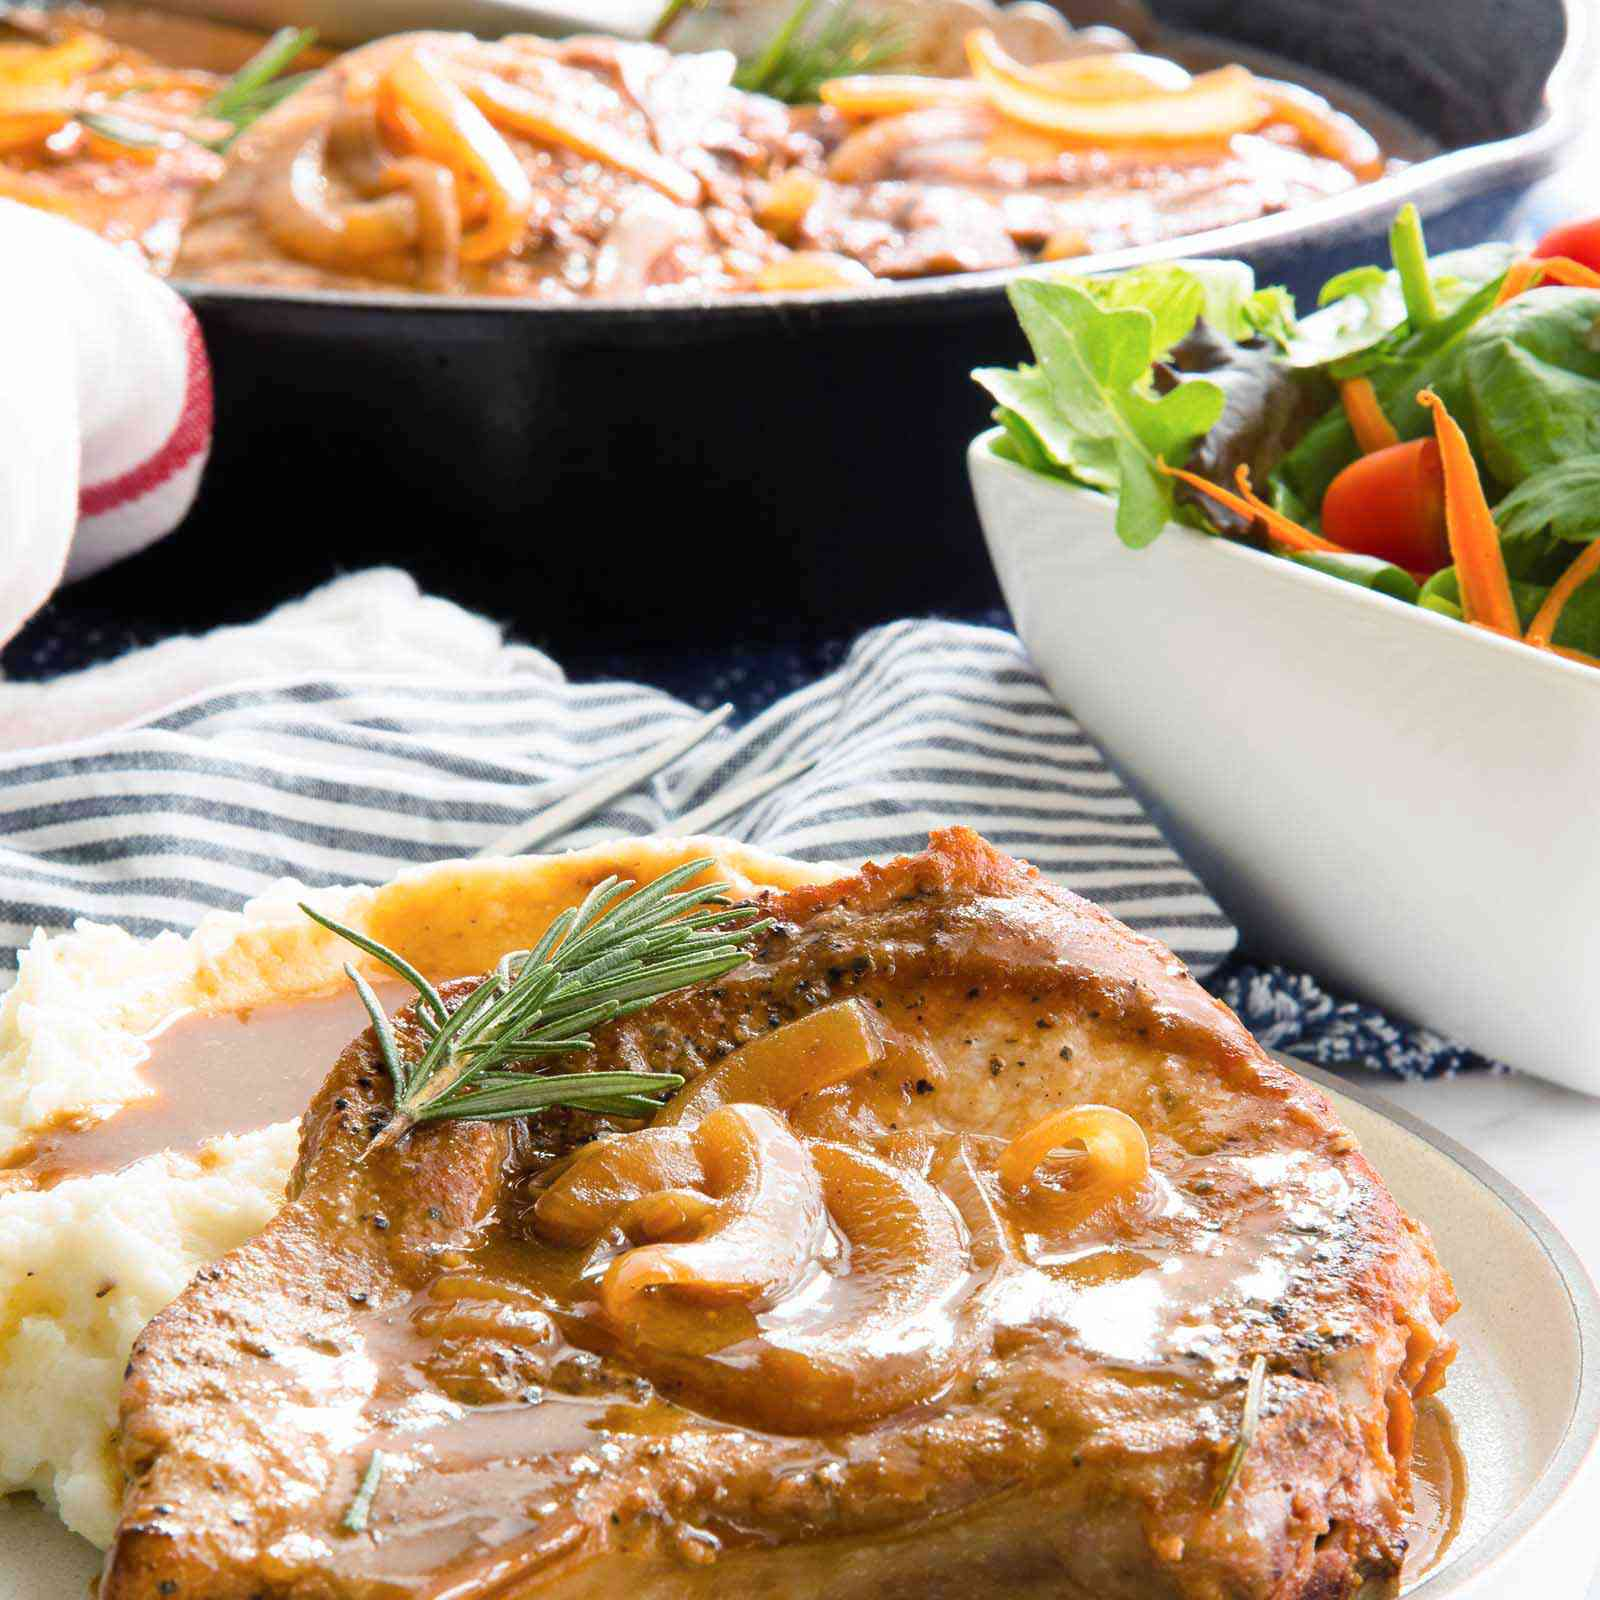 A gluten free smothered pork chop with a pile of mashed potatoes covered in gravy on an ivory plate with a striped linen nearyby and a side salad.